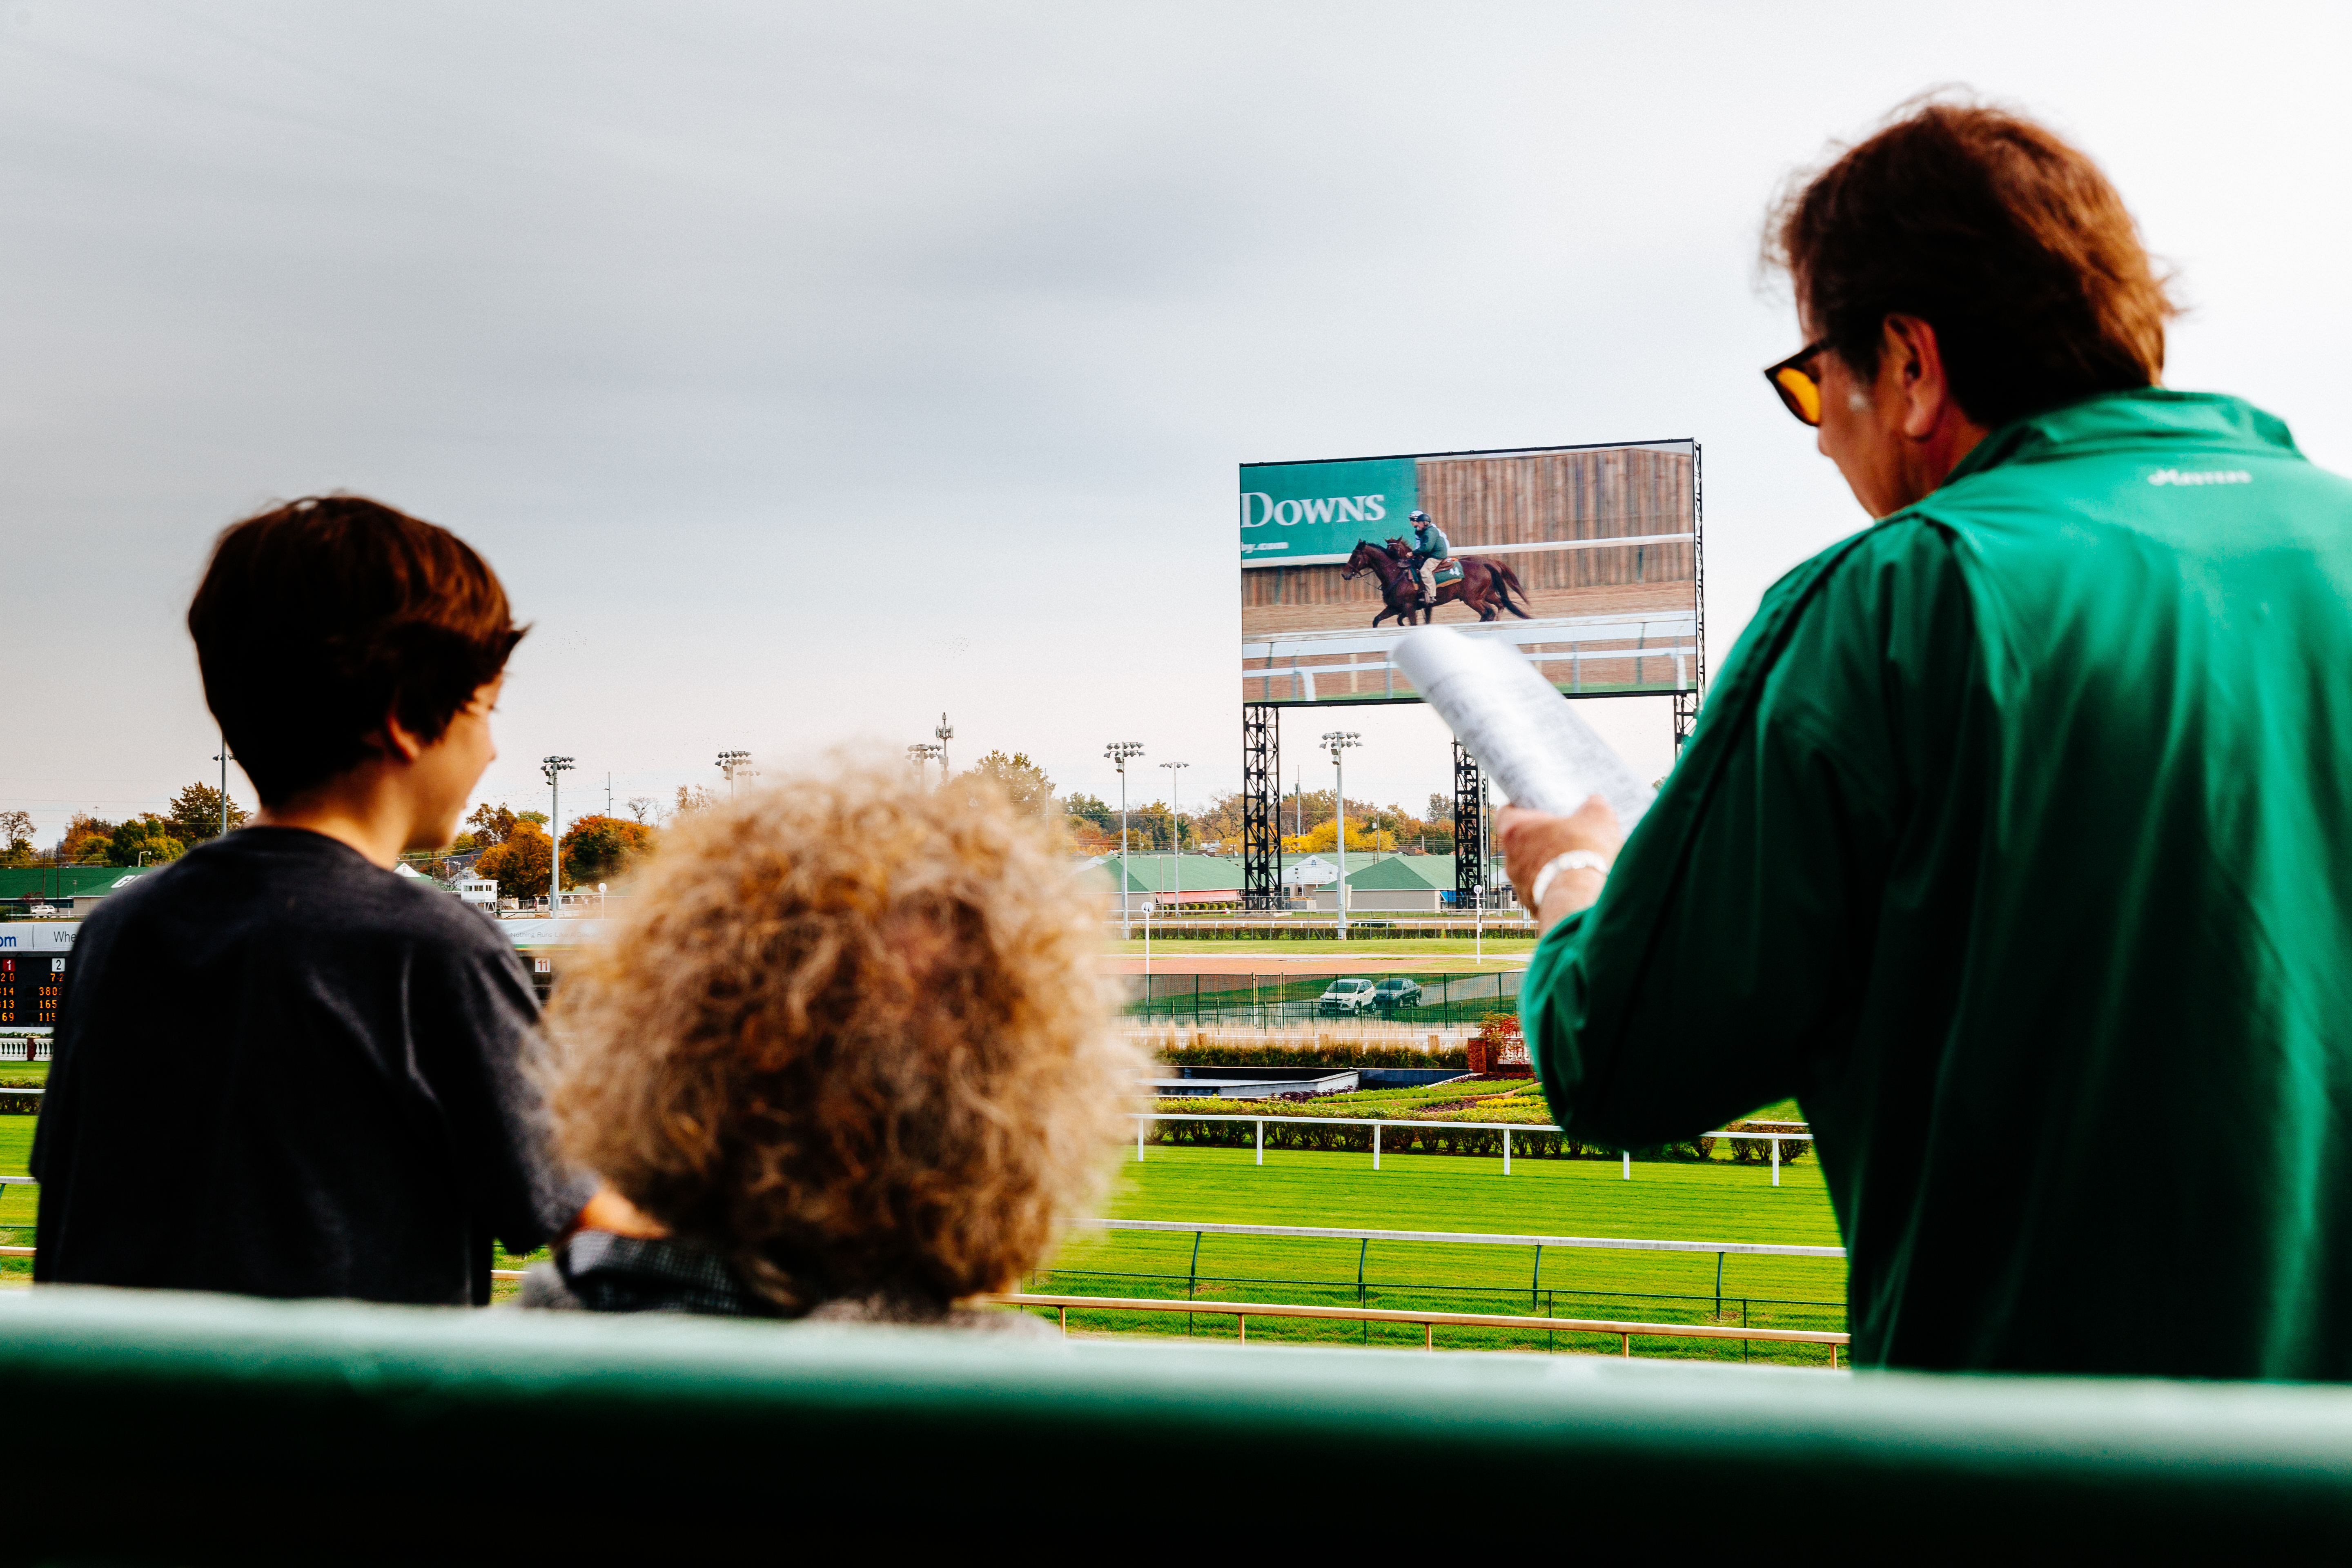 Larger than three NBA courts put together, Churchill Downs' Big Board is one of the biggest high-def video screens in sports.